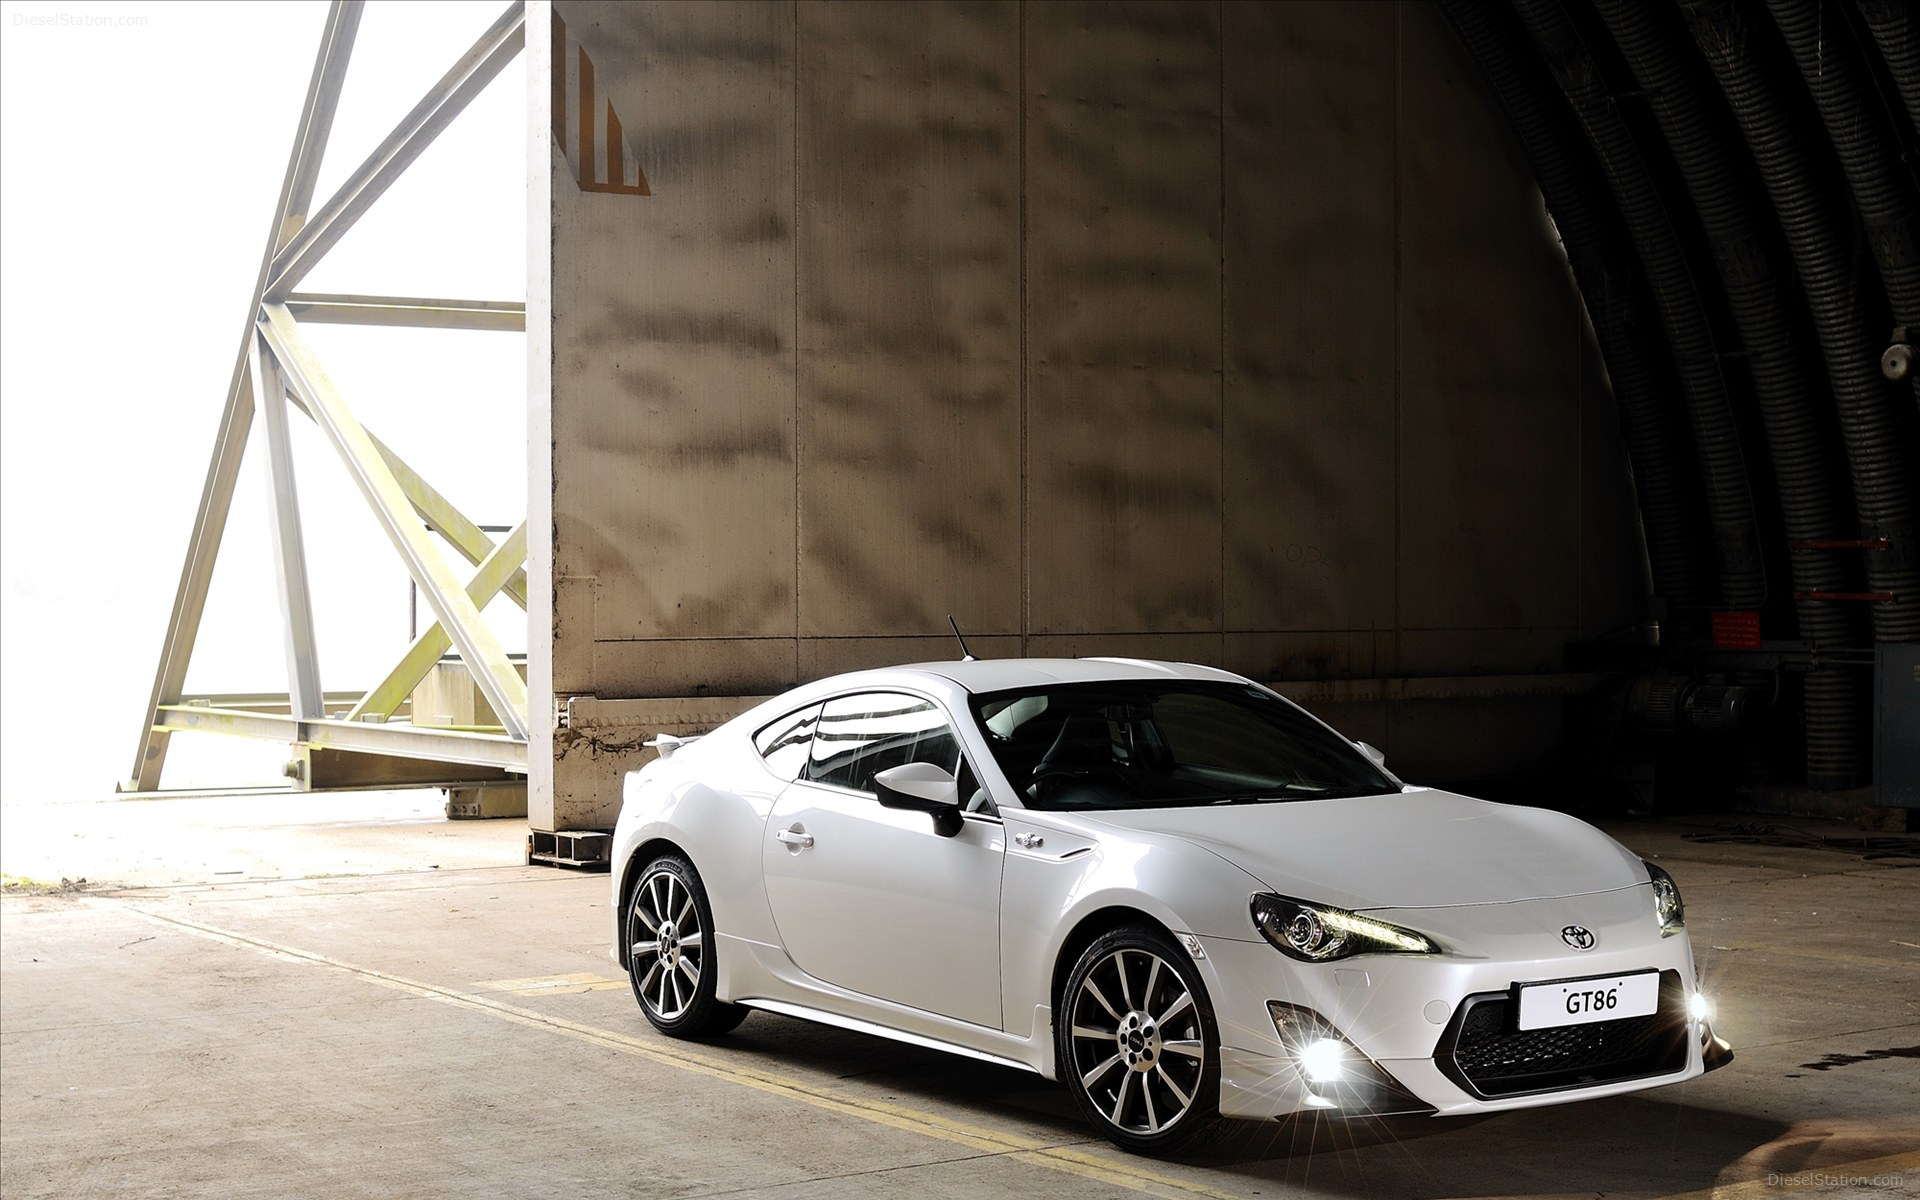 Toyota GT86 TRD 2014 Widescreen Exotic Car Wallpaper 03 1920x1200